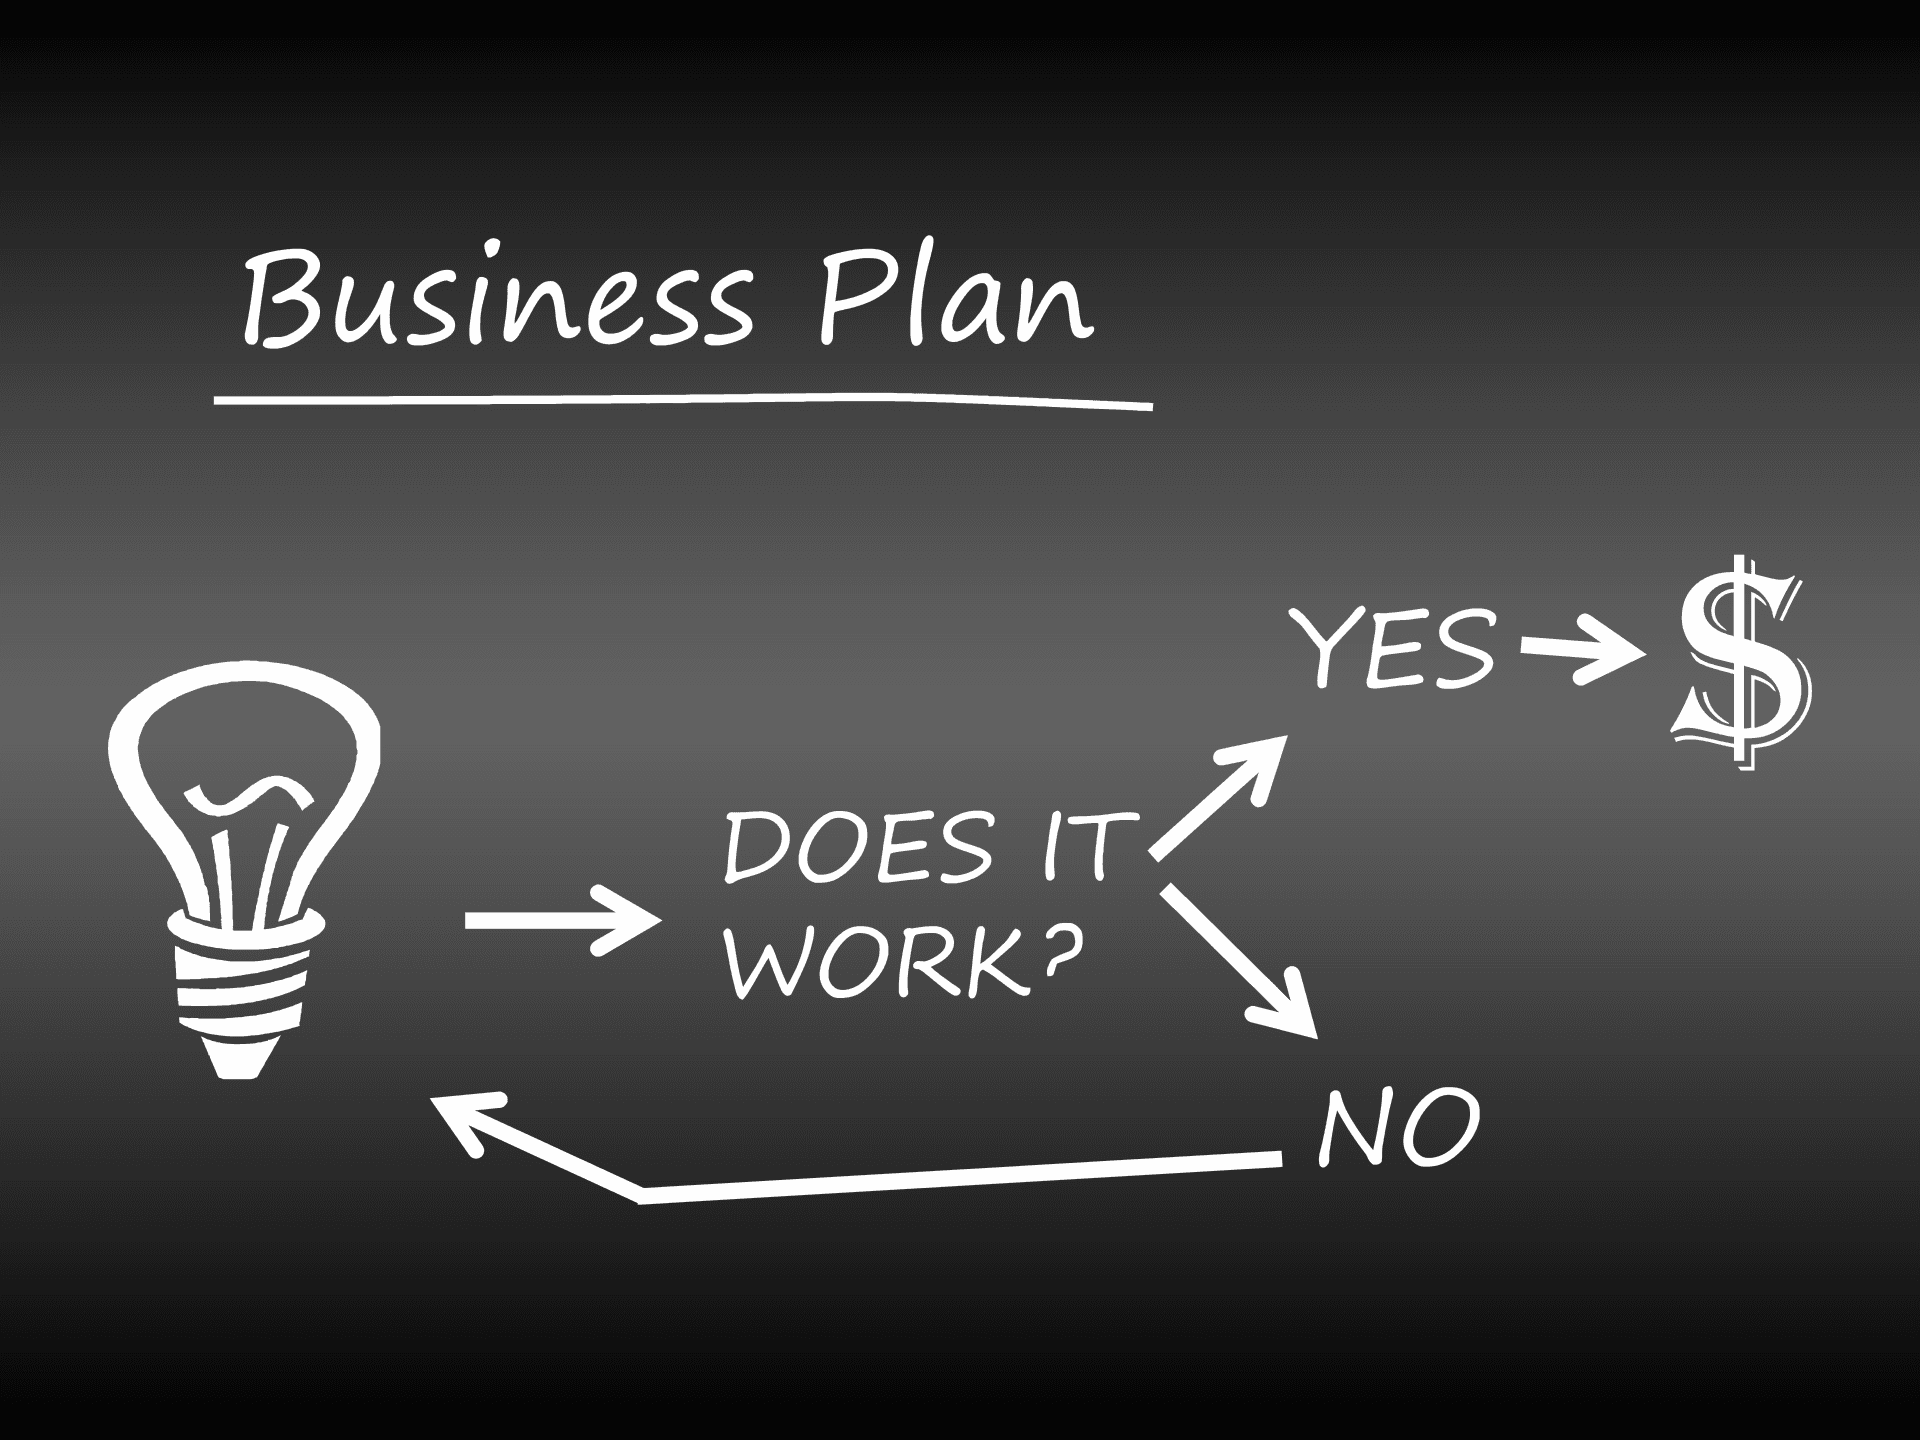 business-plan-metropolislasercentre